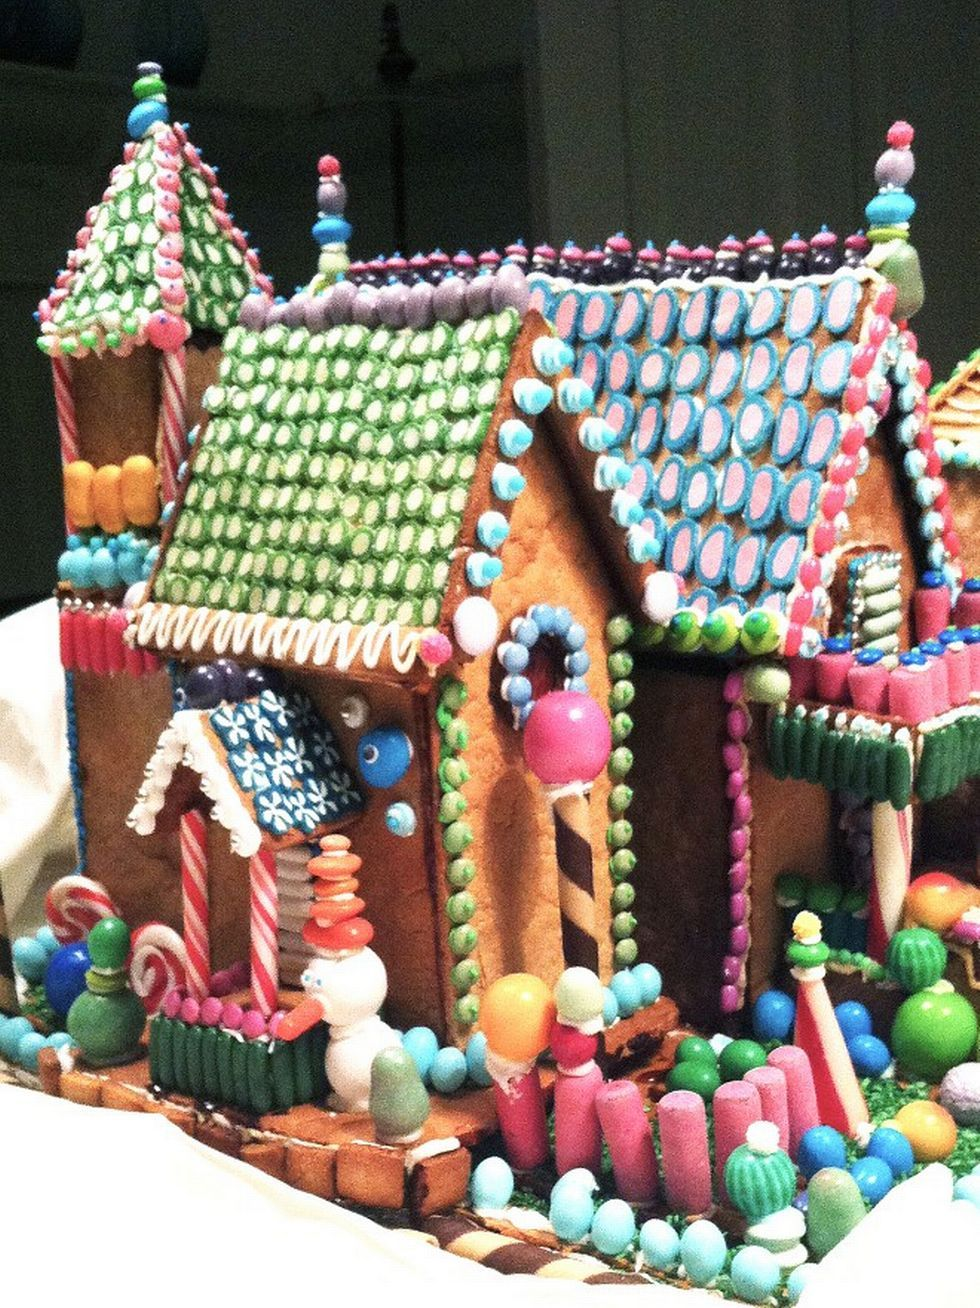 Gingerbread in the final - 'I'm not so concerned about the construction. My philosophy is that it is the decorations that does the trick. Preferably so colorful and much as possible.' (Photo: Grete Haug)